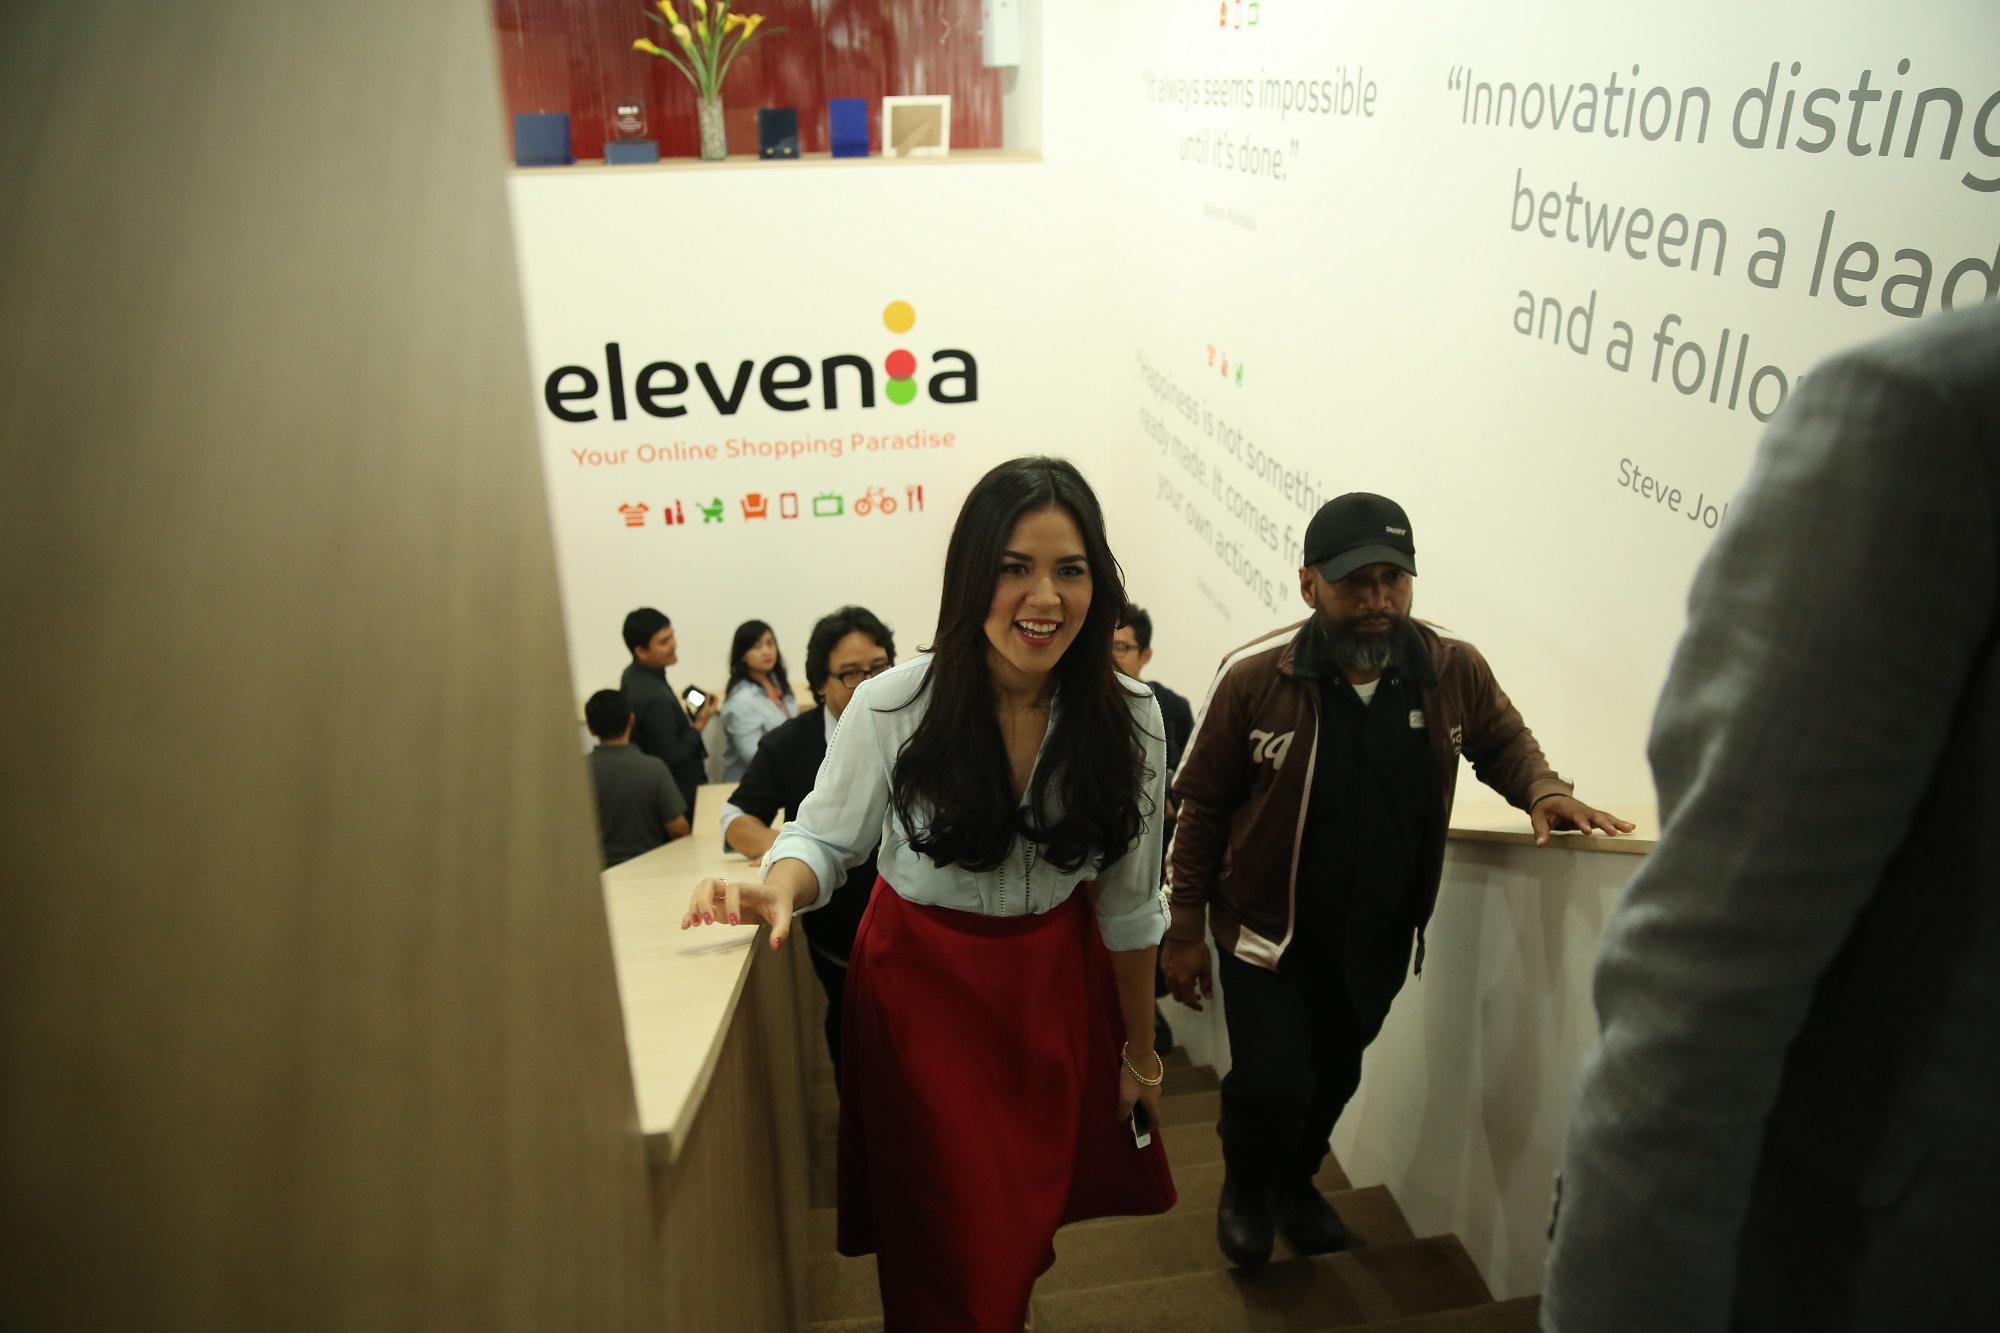 Raisa walking up the steps at elevenia office.